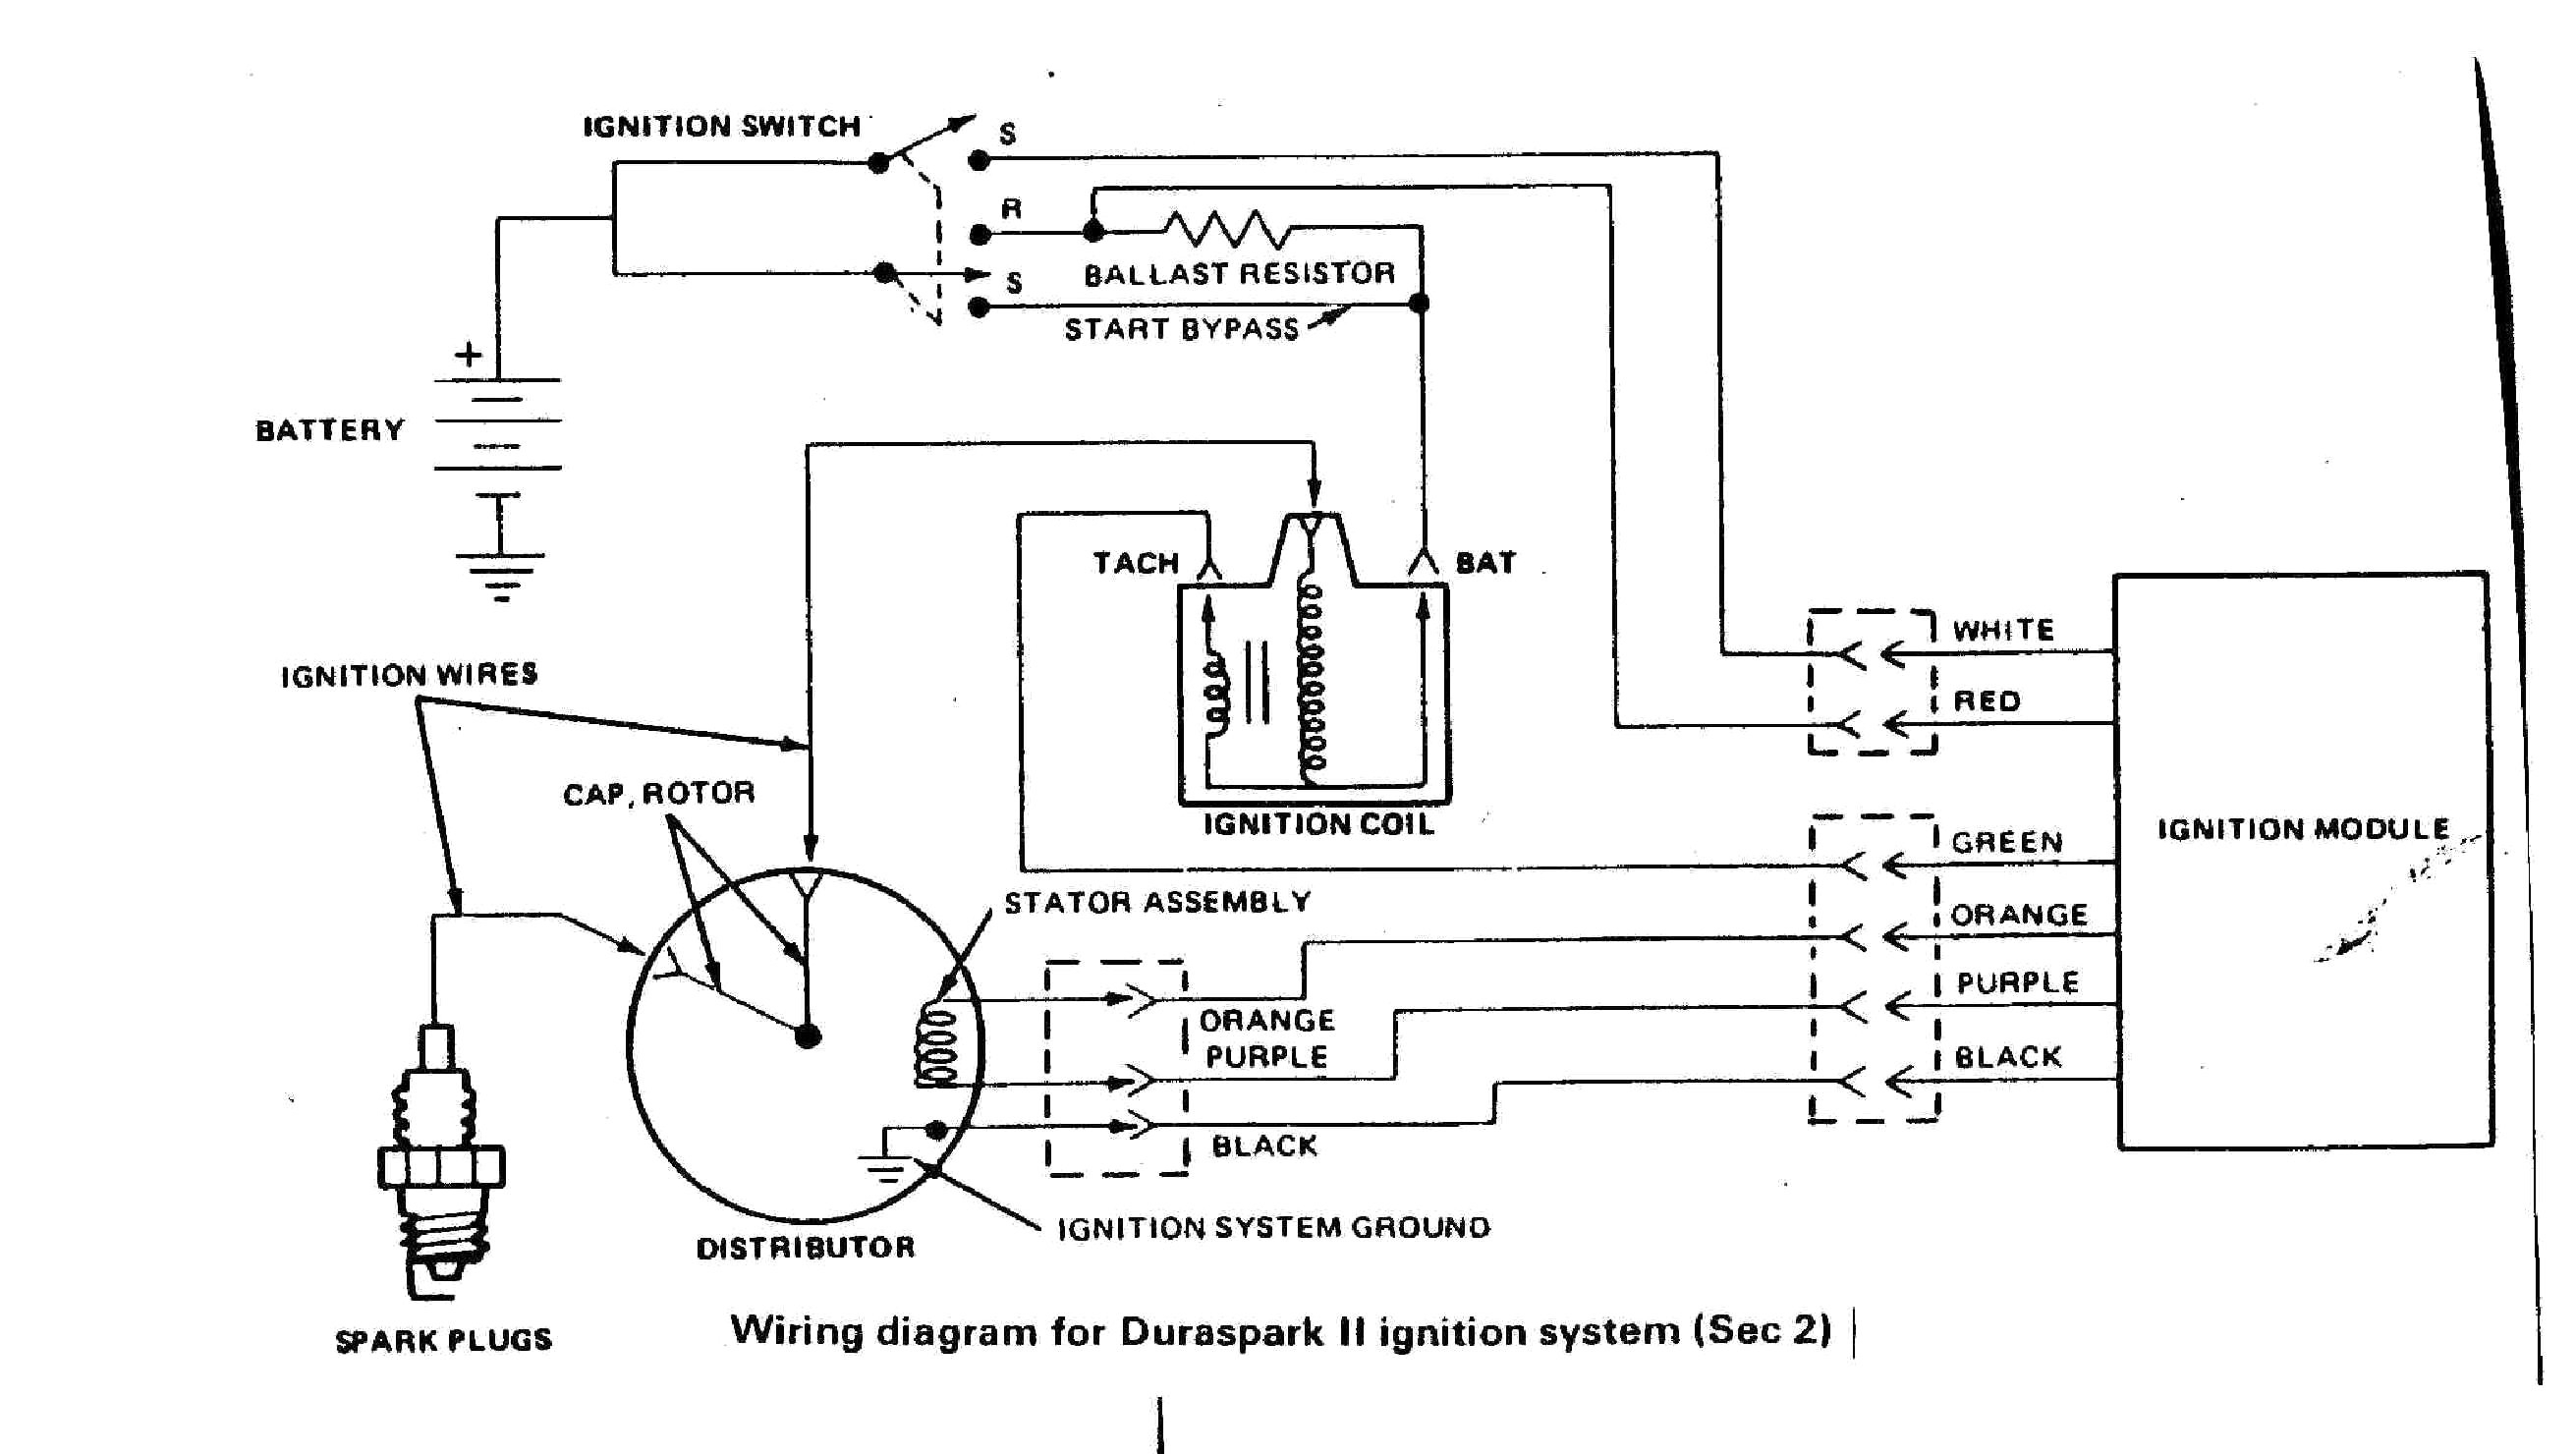 ford tractor ignition switch wiring diagram Collection-ford tractor ignition switch wiring diagram Collection Ford Tractor Ignition Switch Wiring Diagram Unique ford 19-r